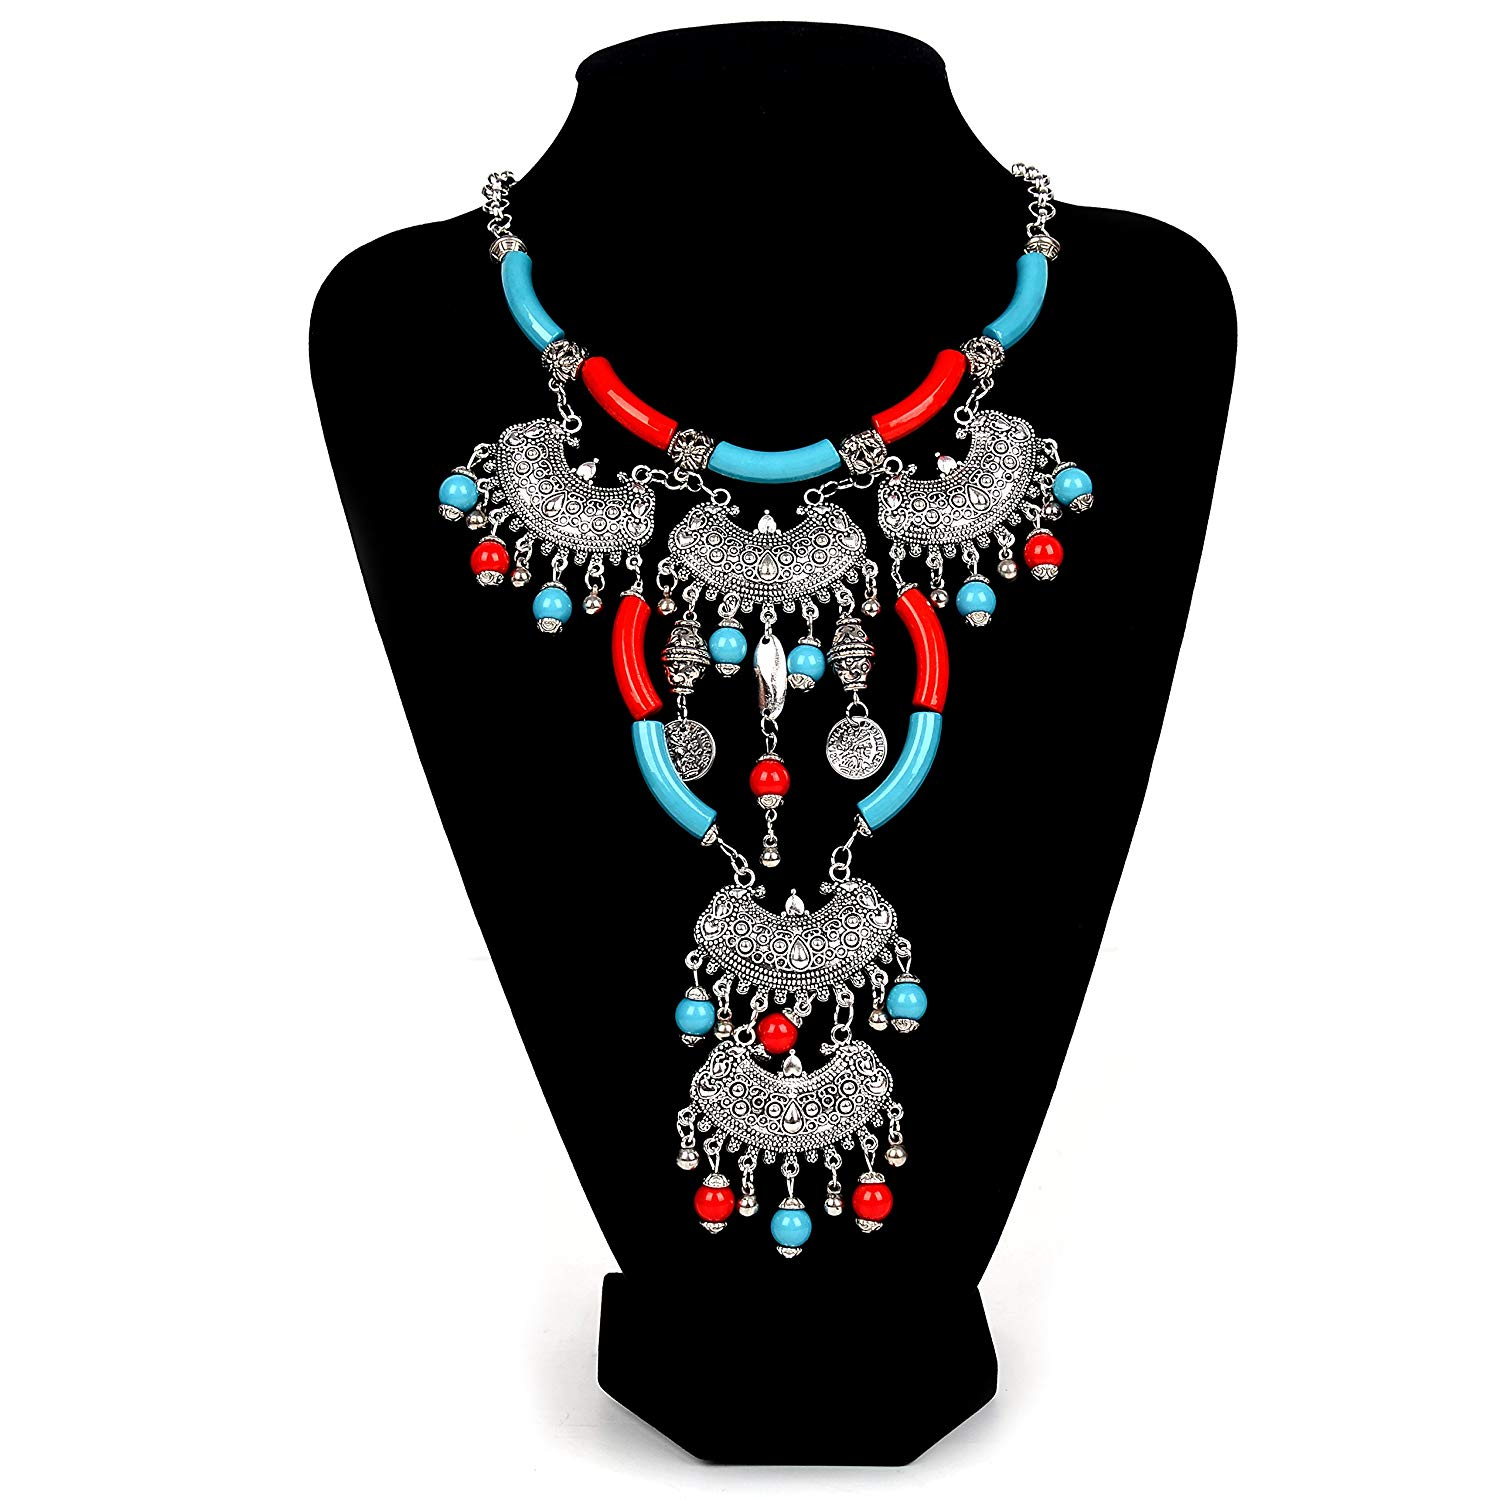 Paxuan Womens Antique Silver/Gold Alloy Vintage Boho Bohemian Turquoise Necklace Ethnic Tribal Beaded Necklace Chunky Statement Necklace